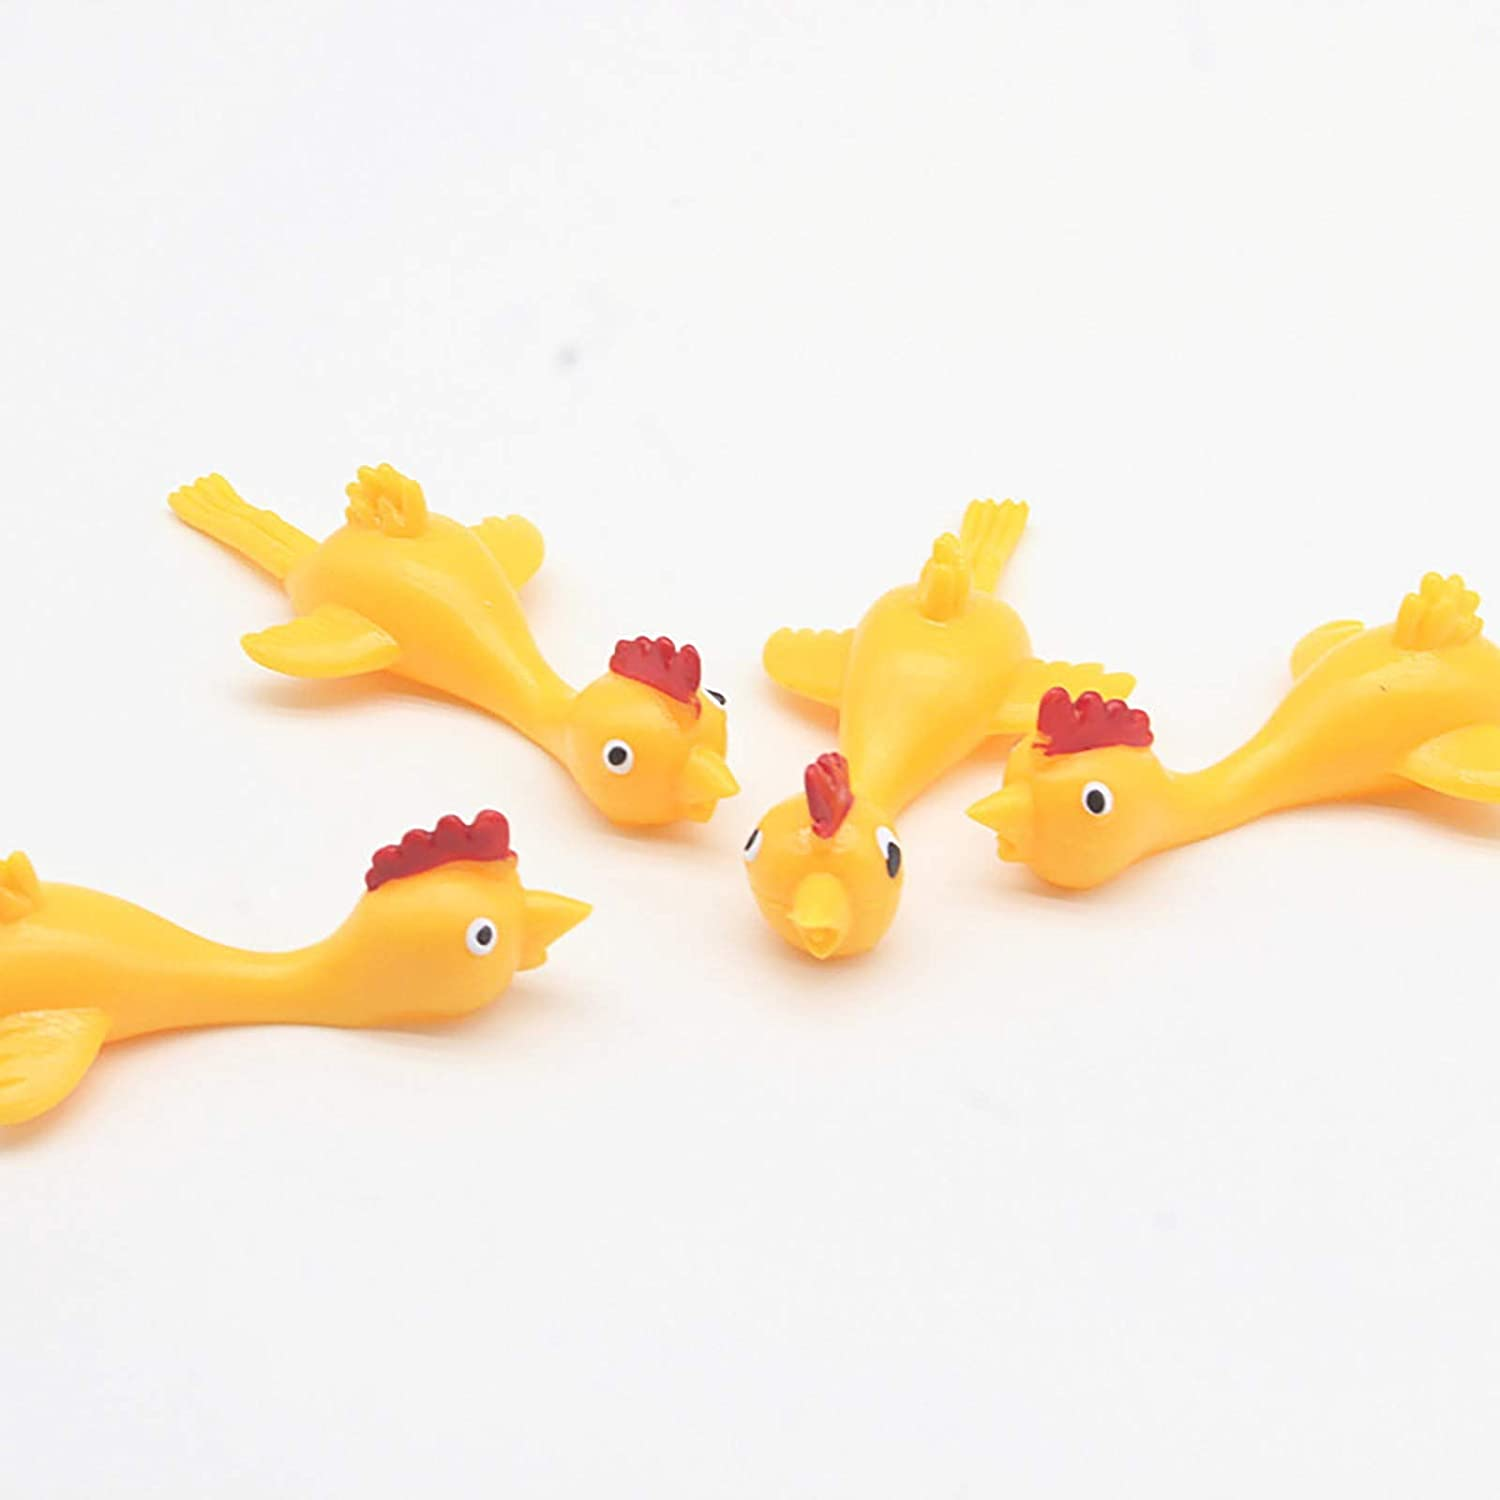 Creative Ejection Chicken Toy-Light Rubber Finger Slingshots for Party Favors and Supplies,Christmas Toy for Children,Stress and Anxiety Reliever, Sensory Toy (6pc)